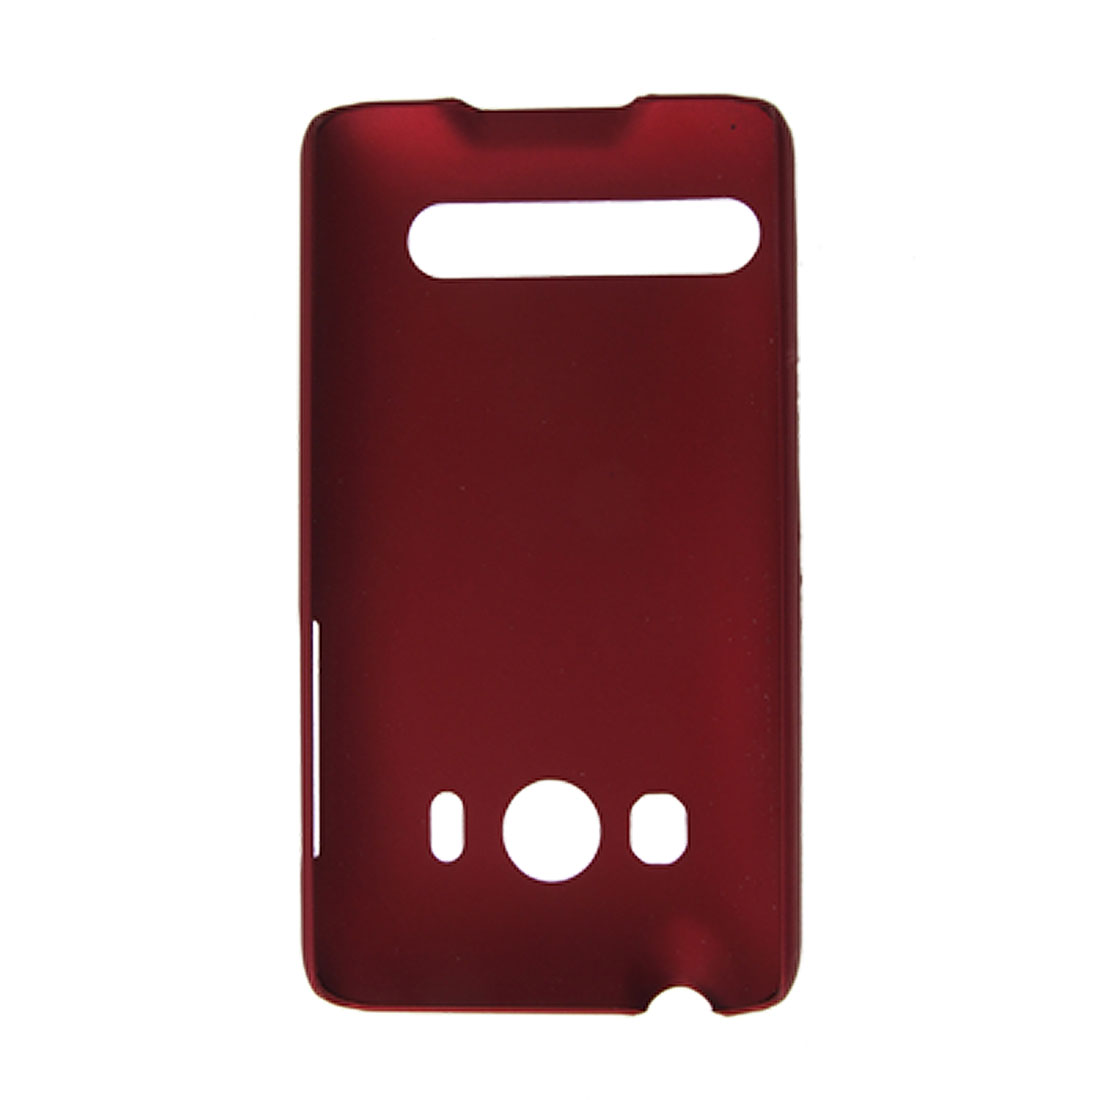 Dark Red Rubberized Hard Plastic Case Back Shell for HTC EVO 4G